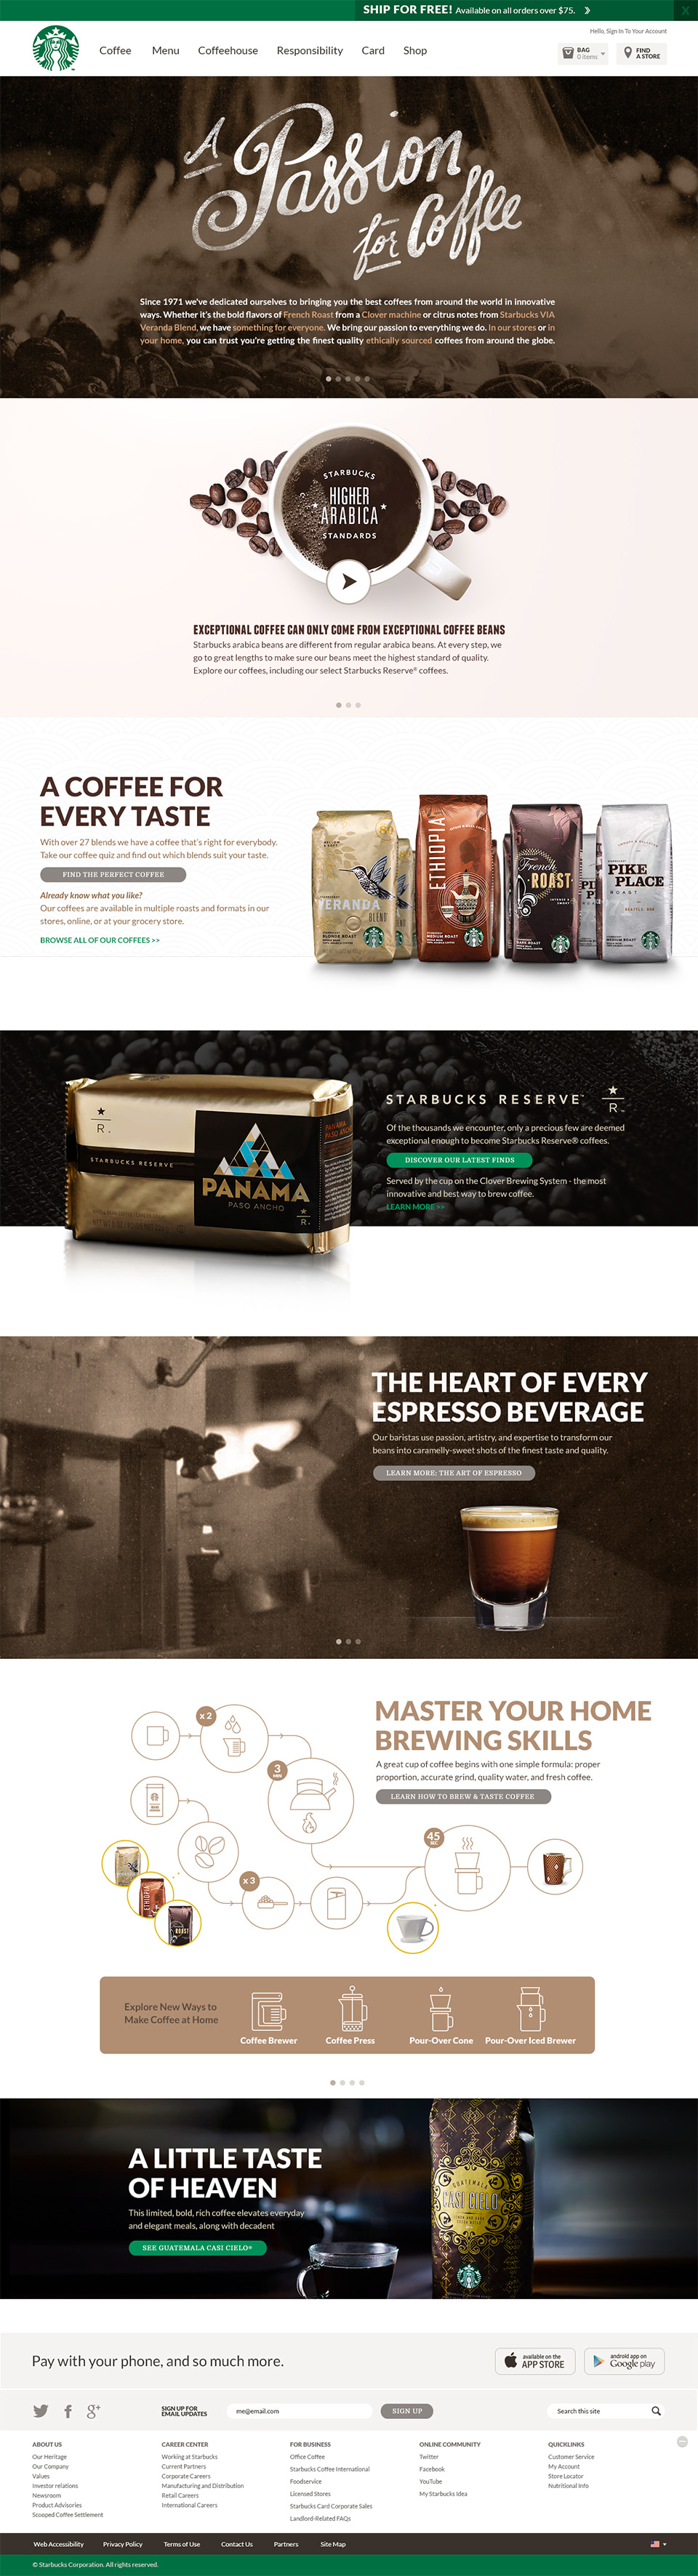 Starbucks Home Brew Illustration & Online Store Redesign